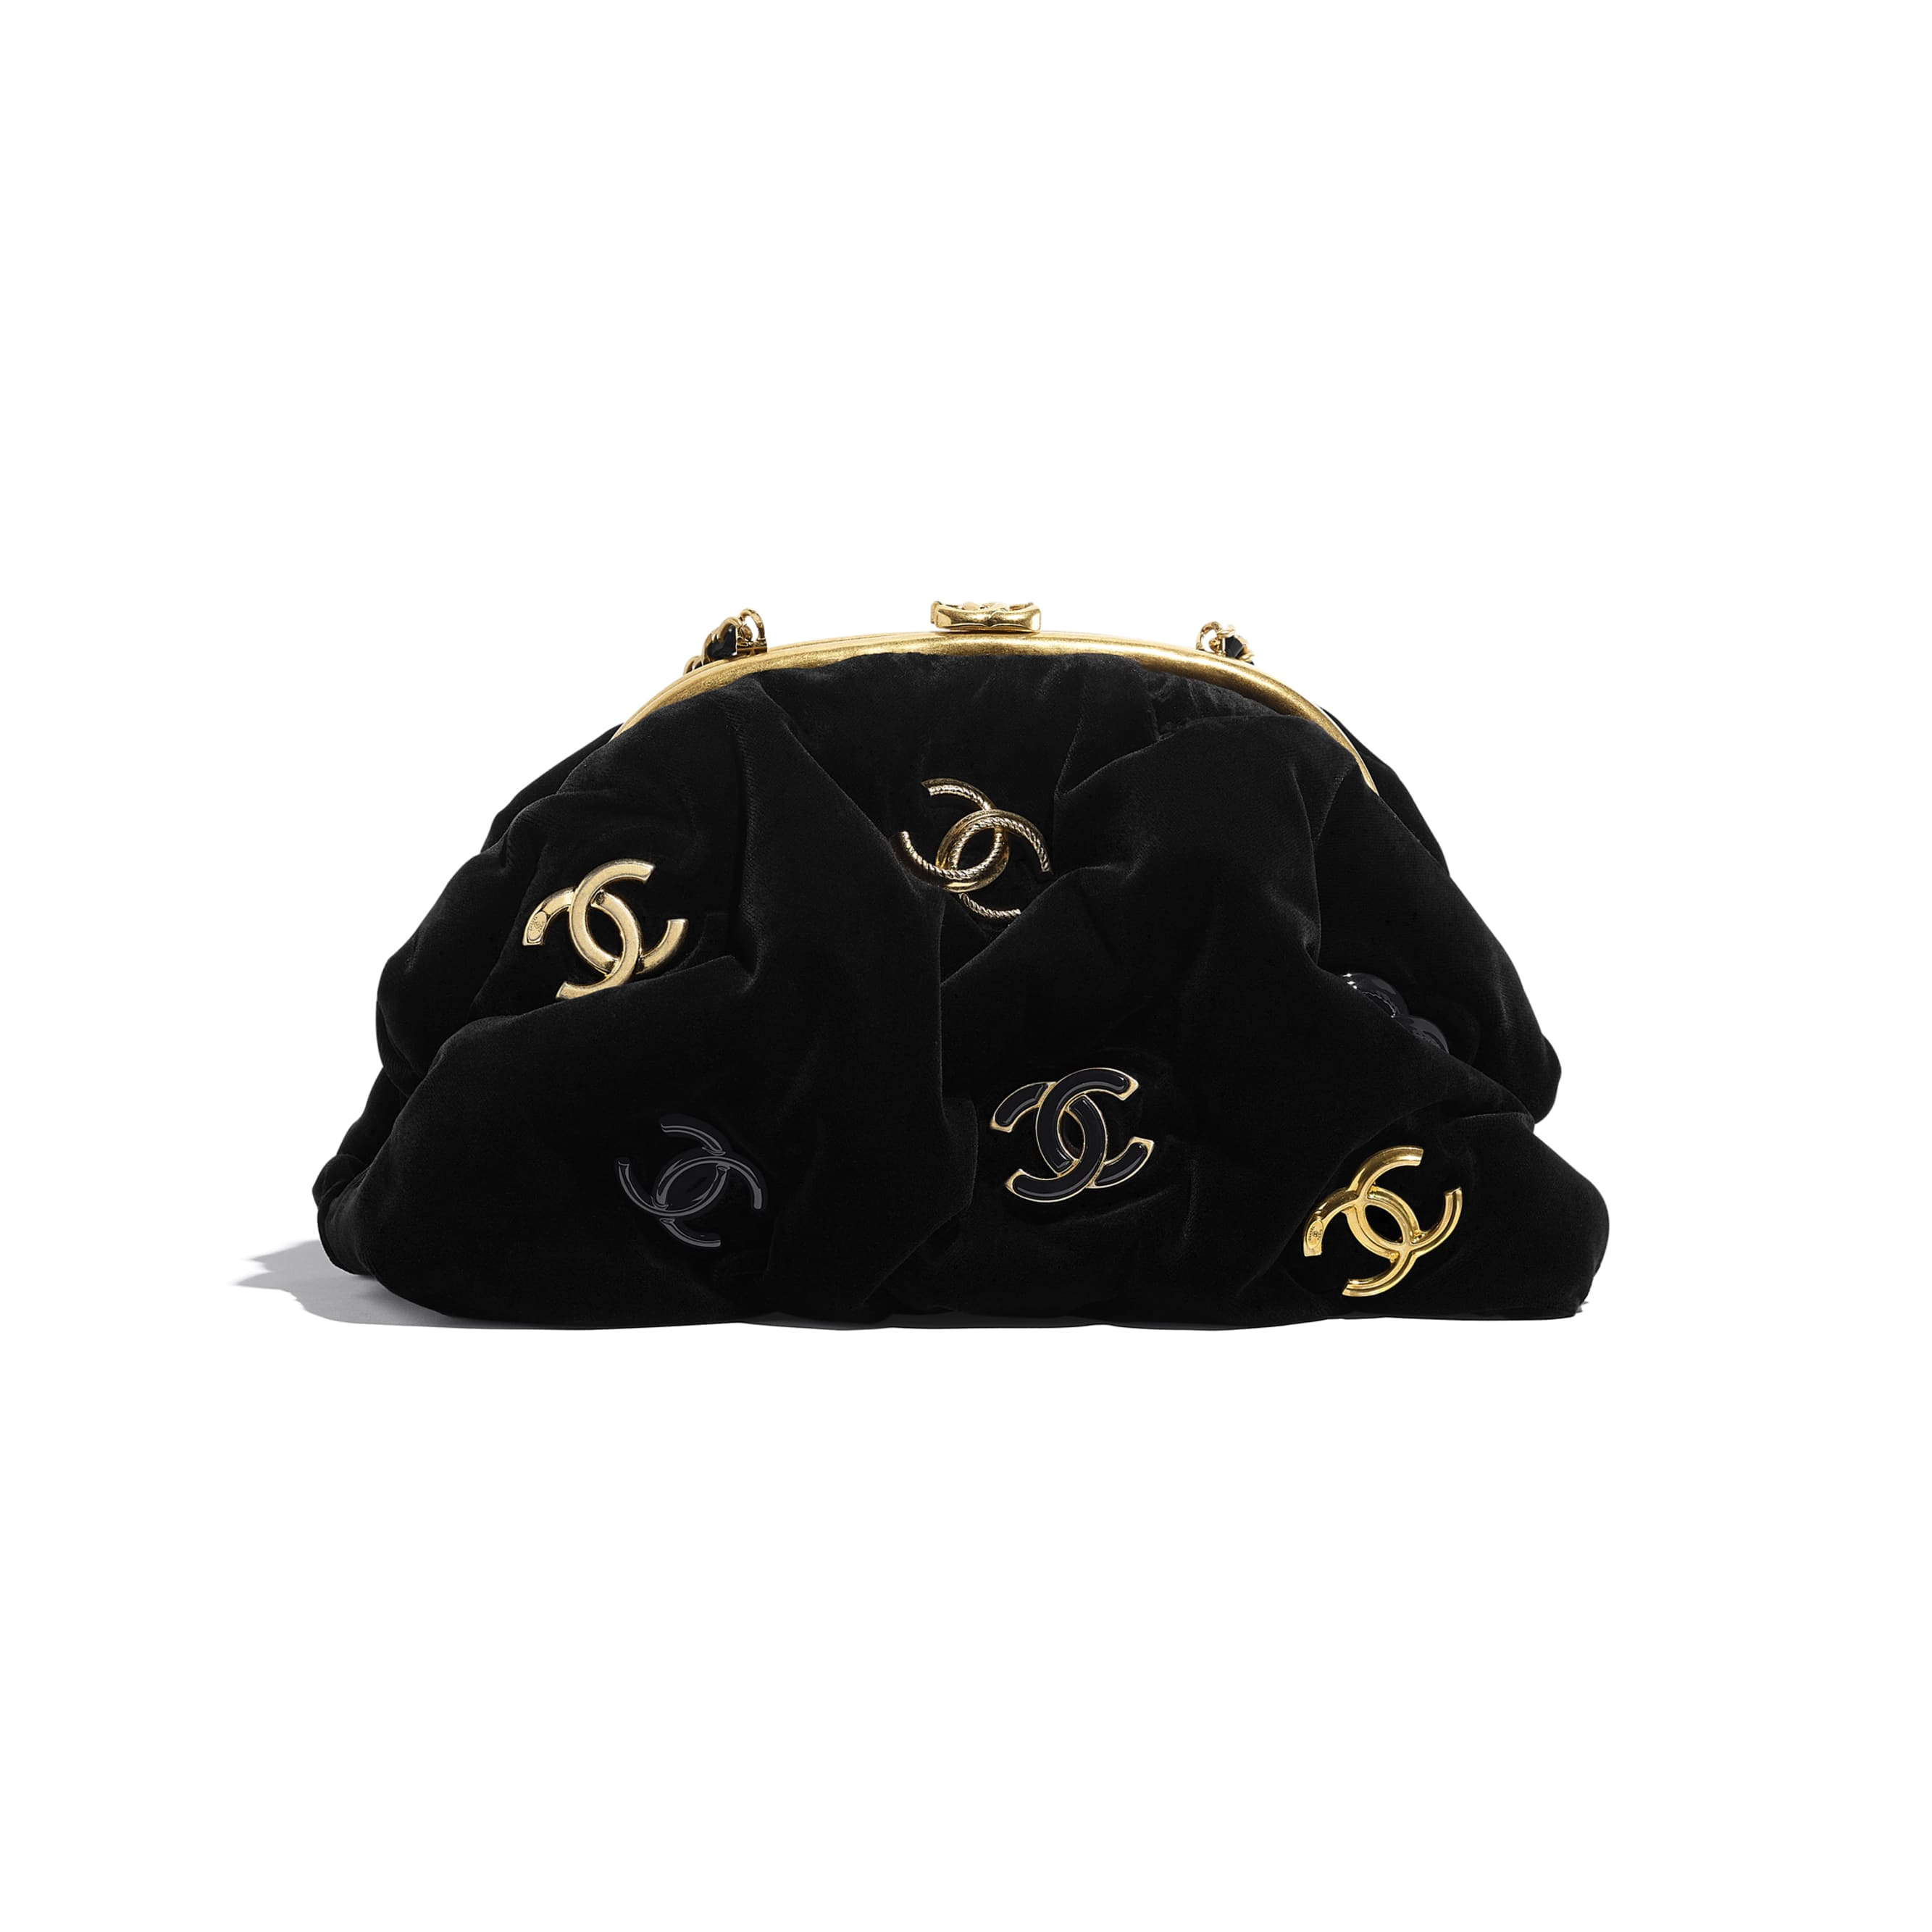 Clutch - Black - Velvet, Black & Gold-Tone Metal - CHANEL - Default view - see standard sized version